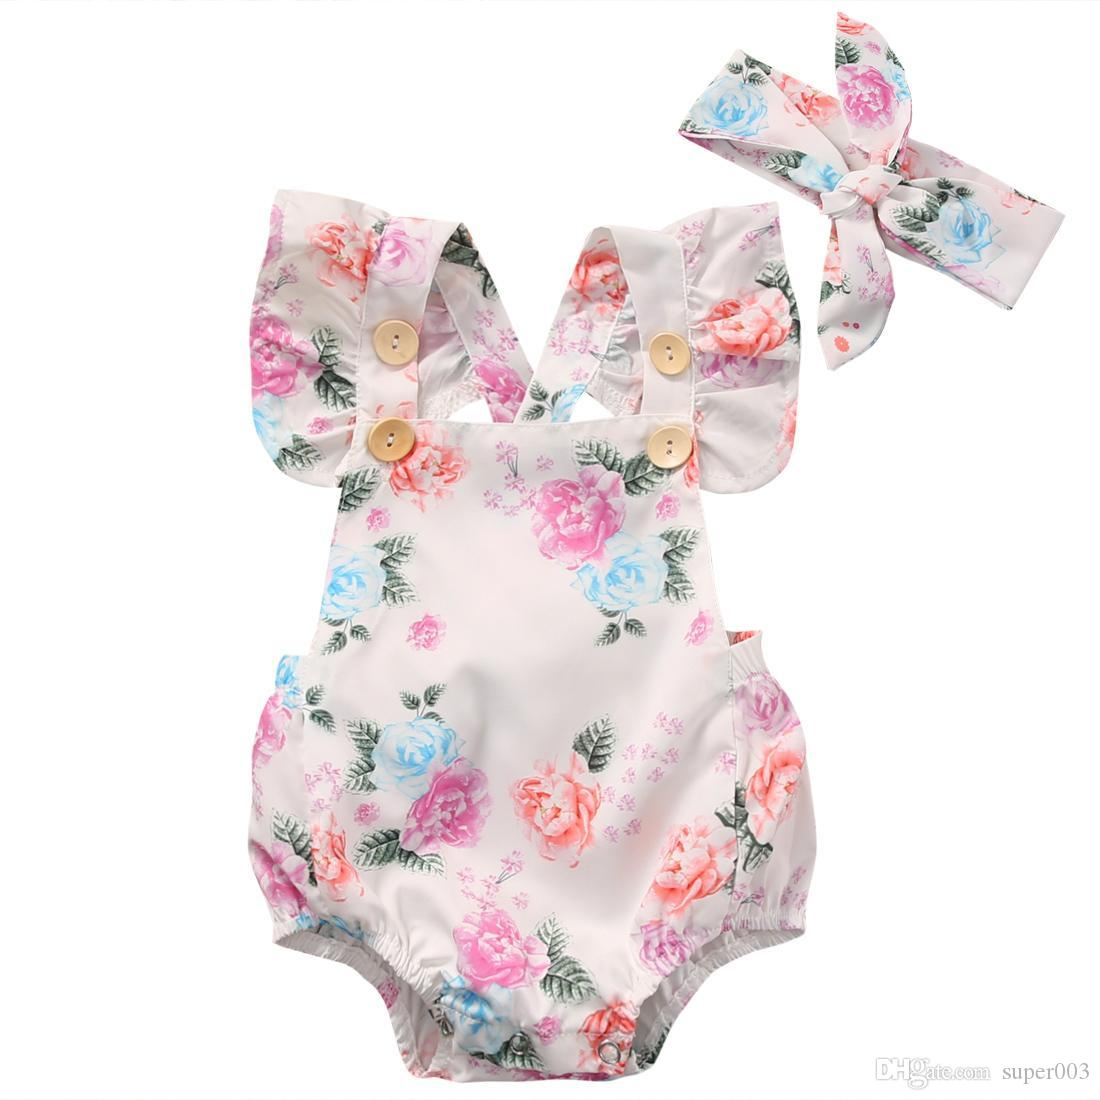 a47f8db9364 2019 Floral Baby Romper Clothes Set 2018 Summer Newborn Baby Girl Ruffled  Sleeve Bodysuit Jumpsuit + Headband Outfit Sunsuit From Super003